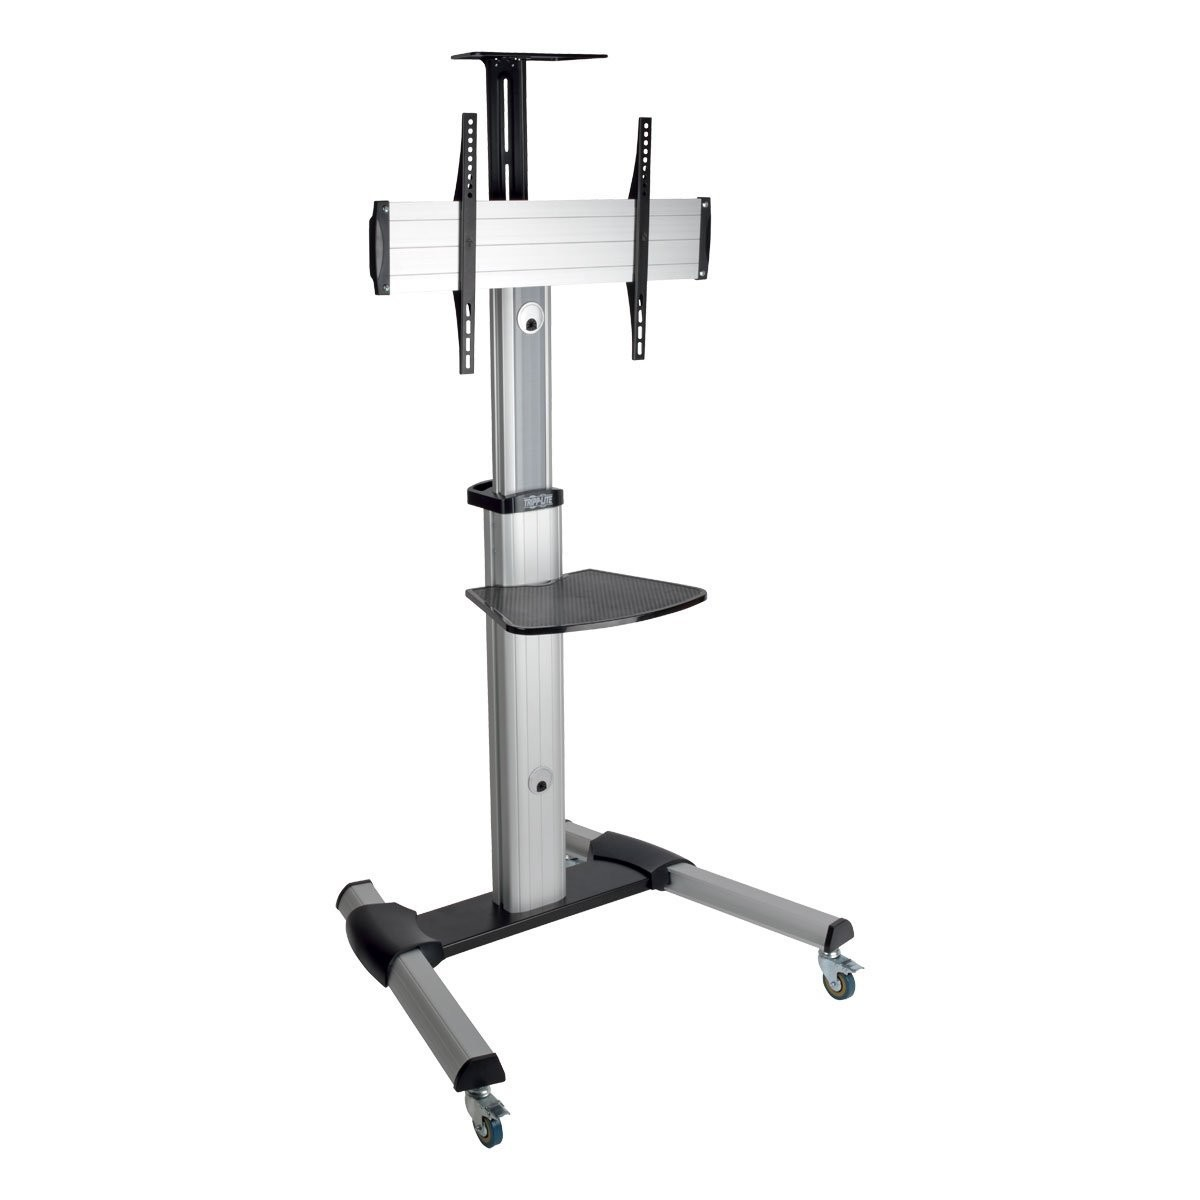 Tripp Lite Mobile Flat-Panel Floor Stand For 32-70 Tvs and Monitors DMCS3270XP